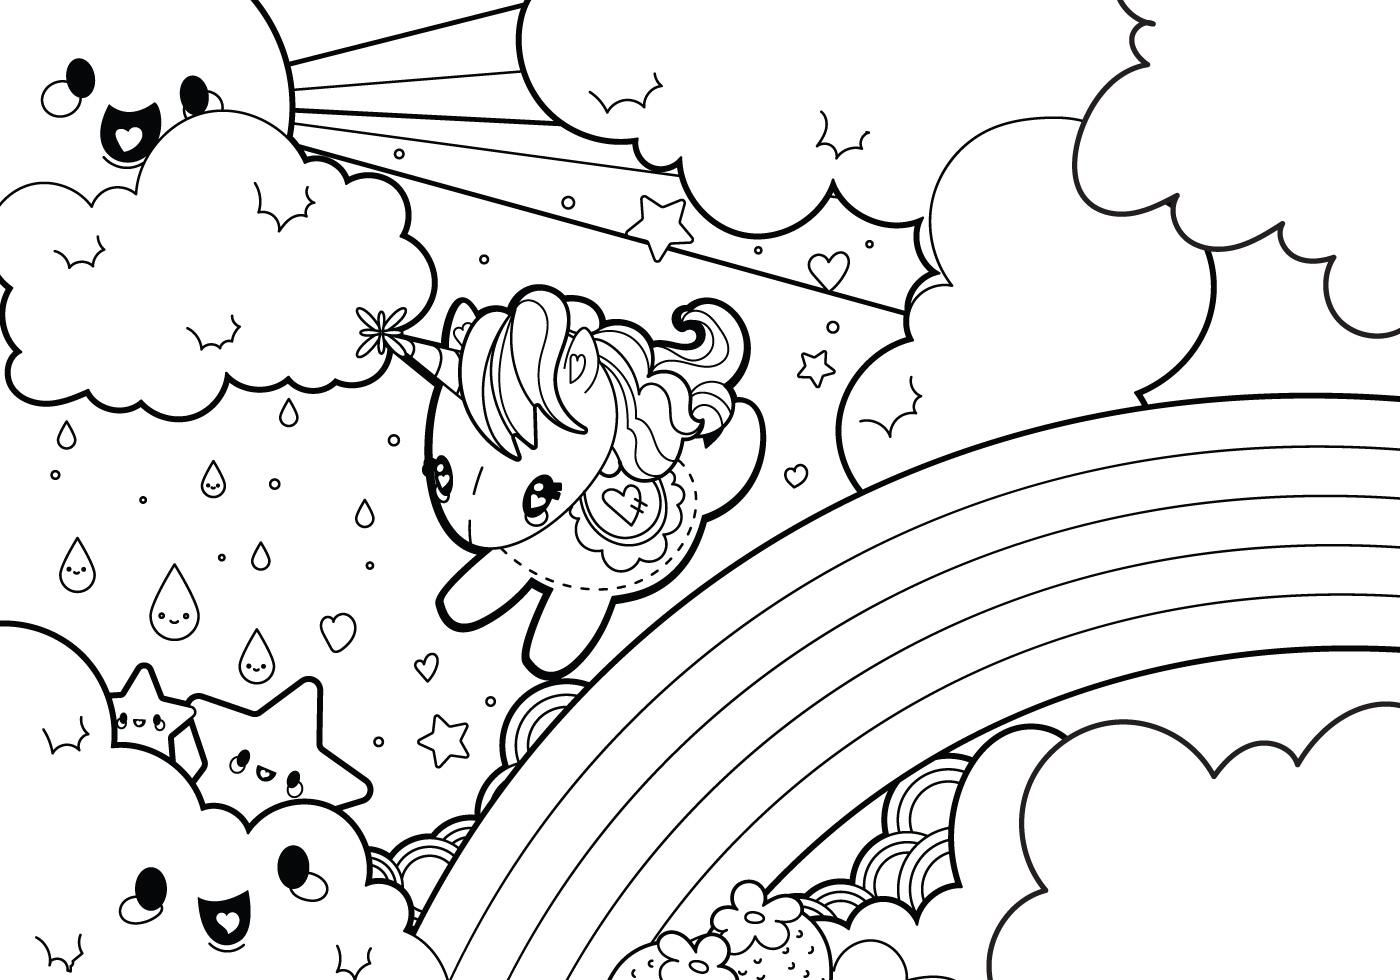 Rainy Rainbow Unicorn Scene Coloring Page Mermaid Coloring Pages Emoji Coloring Pages Unicorn Coloring Pages